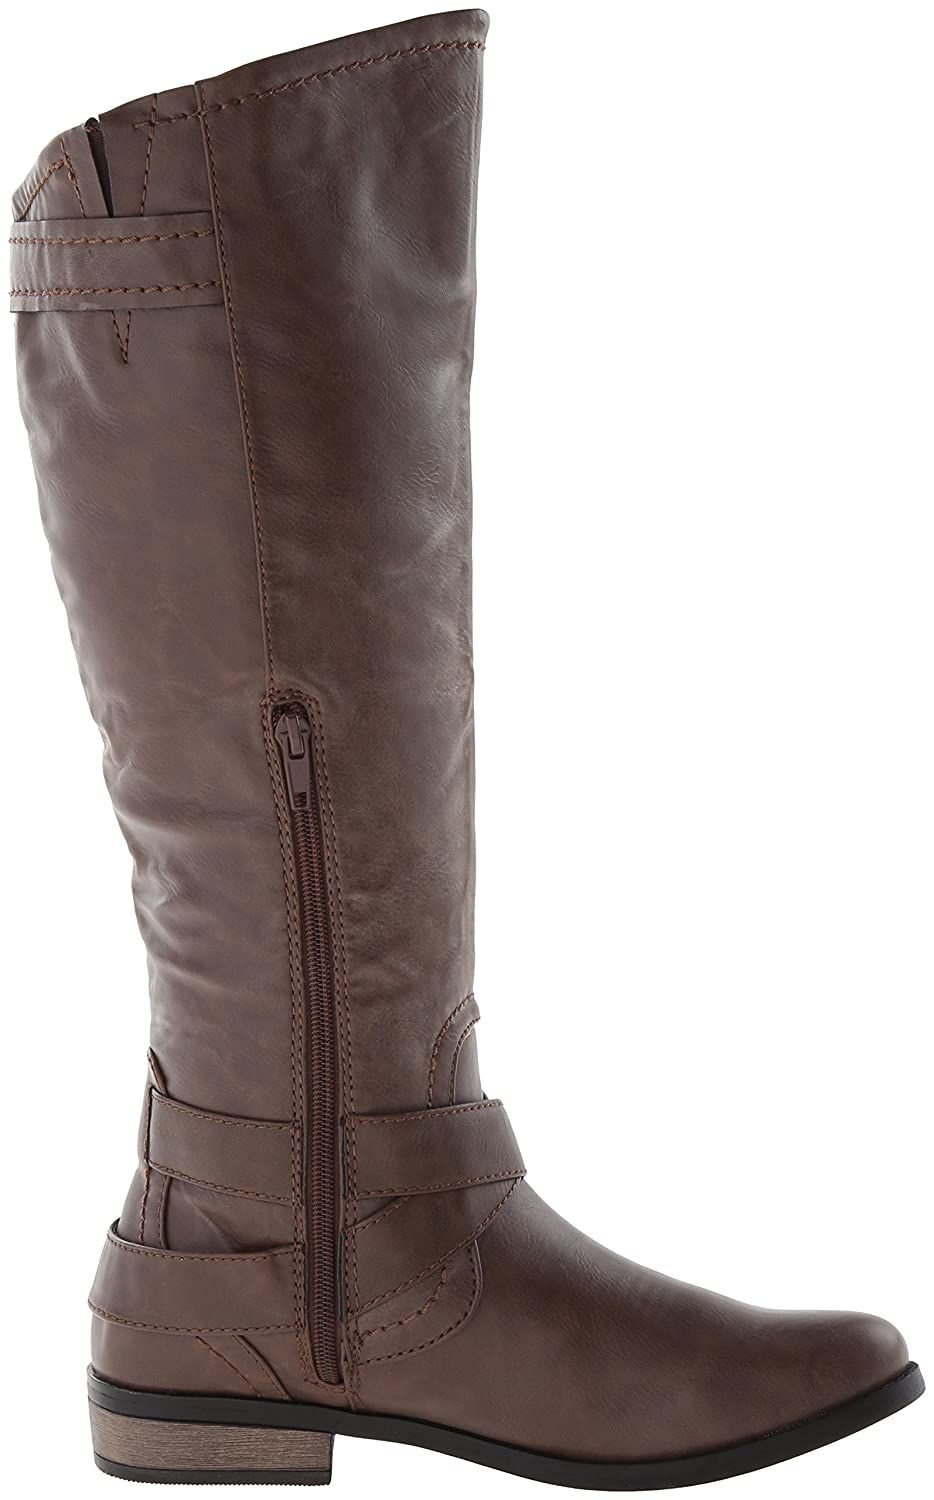 Rampage Riding Damens's Hansel Zipper and Buckle Knee-High Riding Rampage Boot - fbac8f